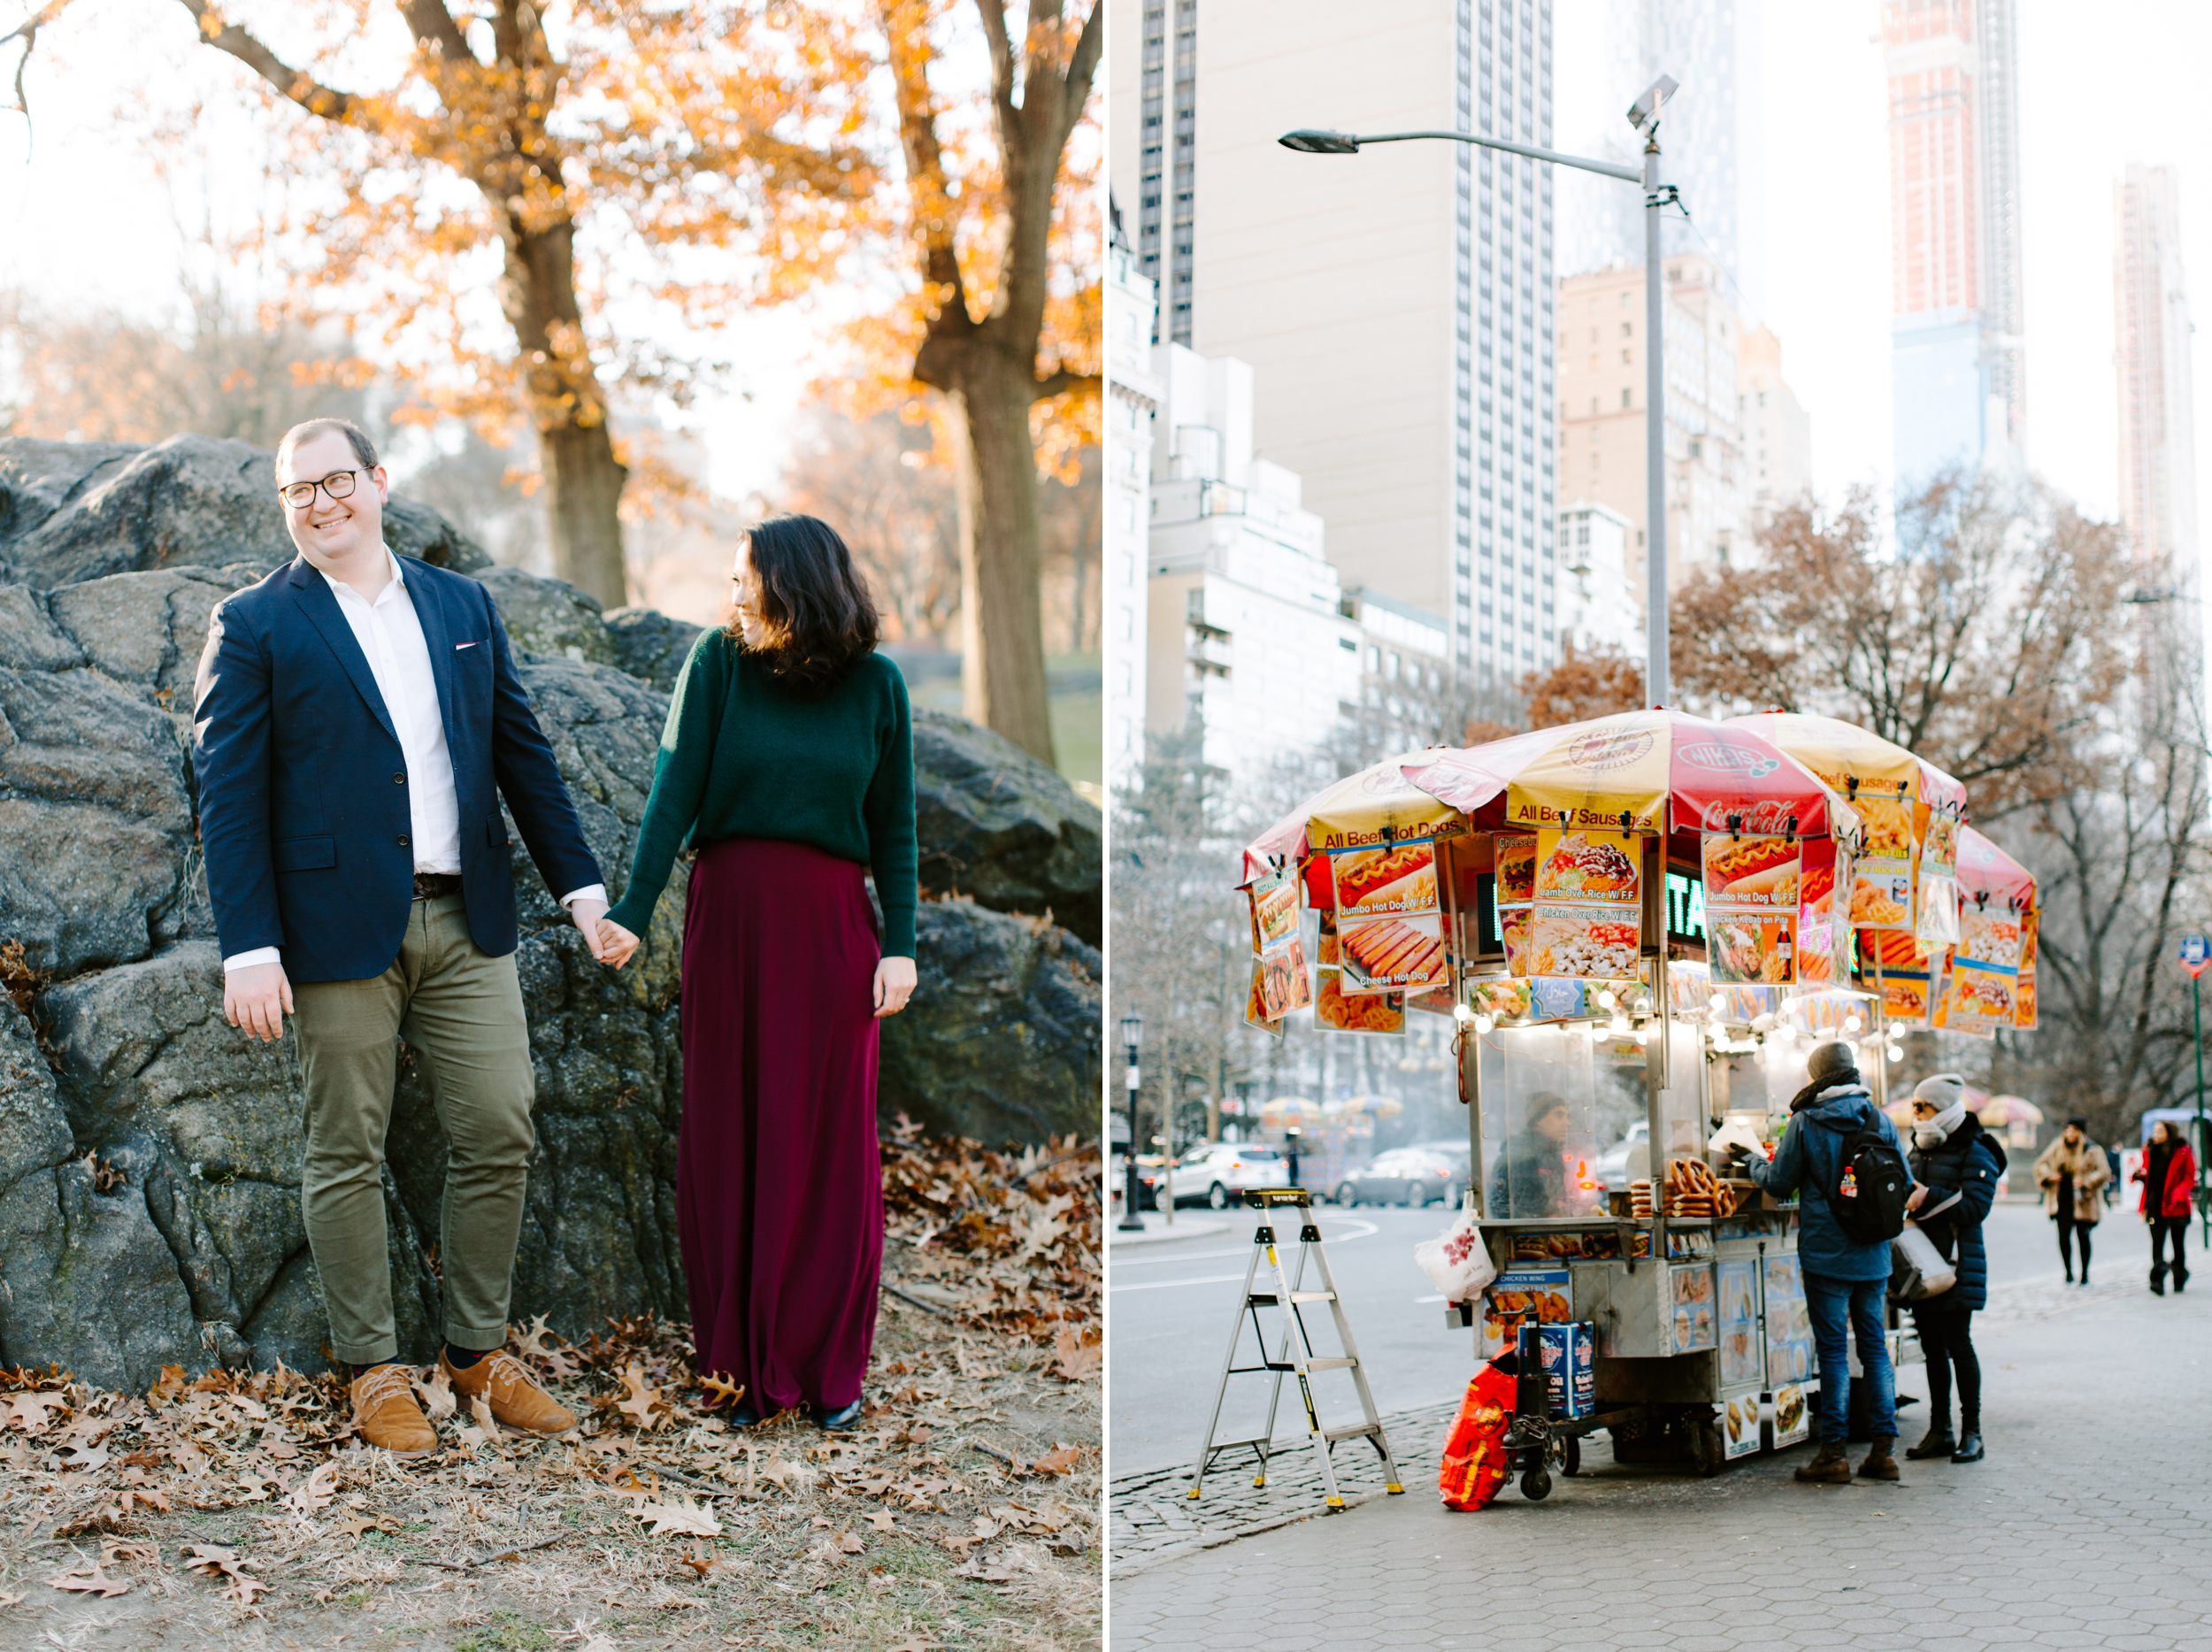 couple laughing in central park and nyc hotdog stand